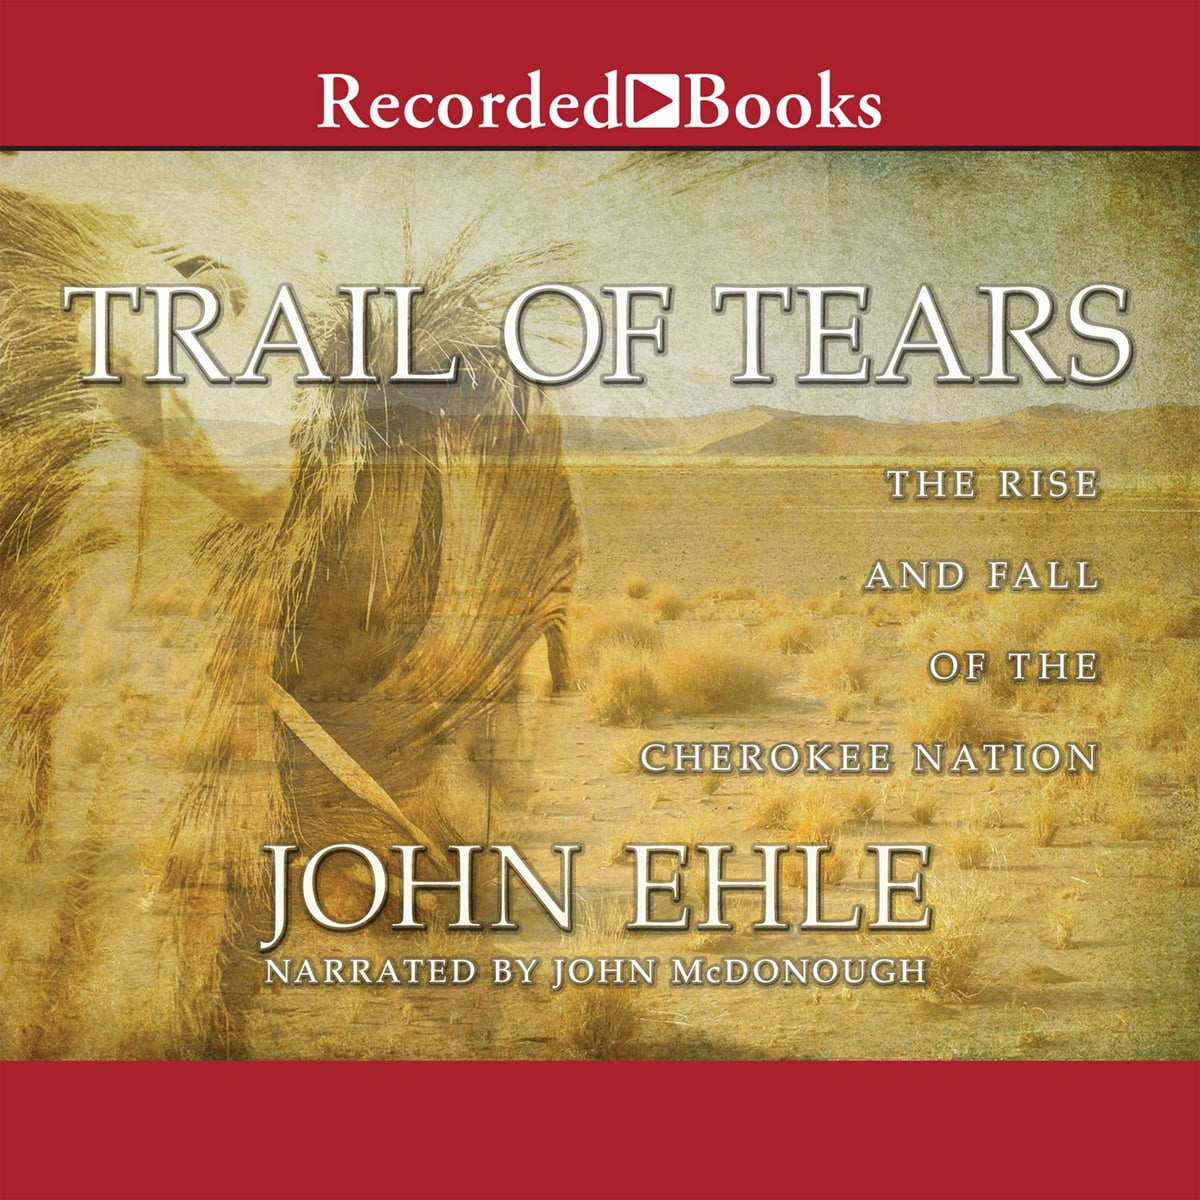 trail of tears audiobook by john ehle - 9781461810247 | rakuten kobo